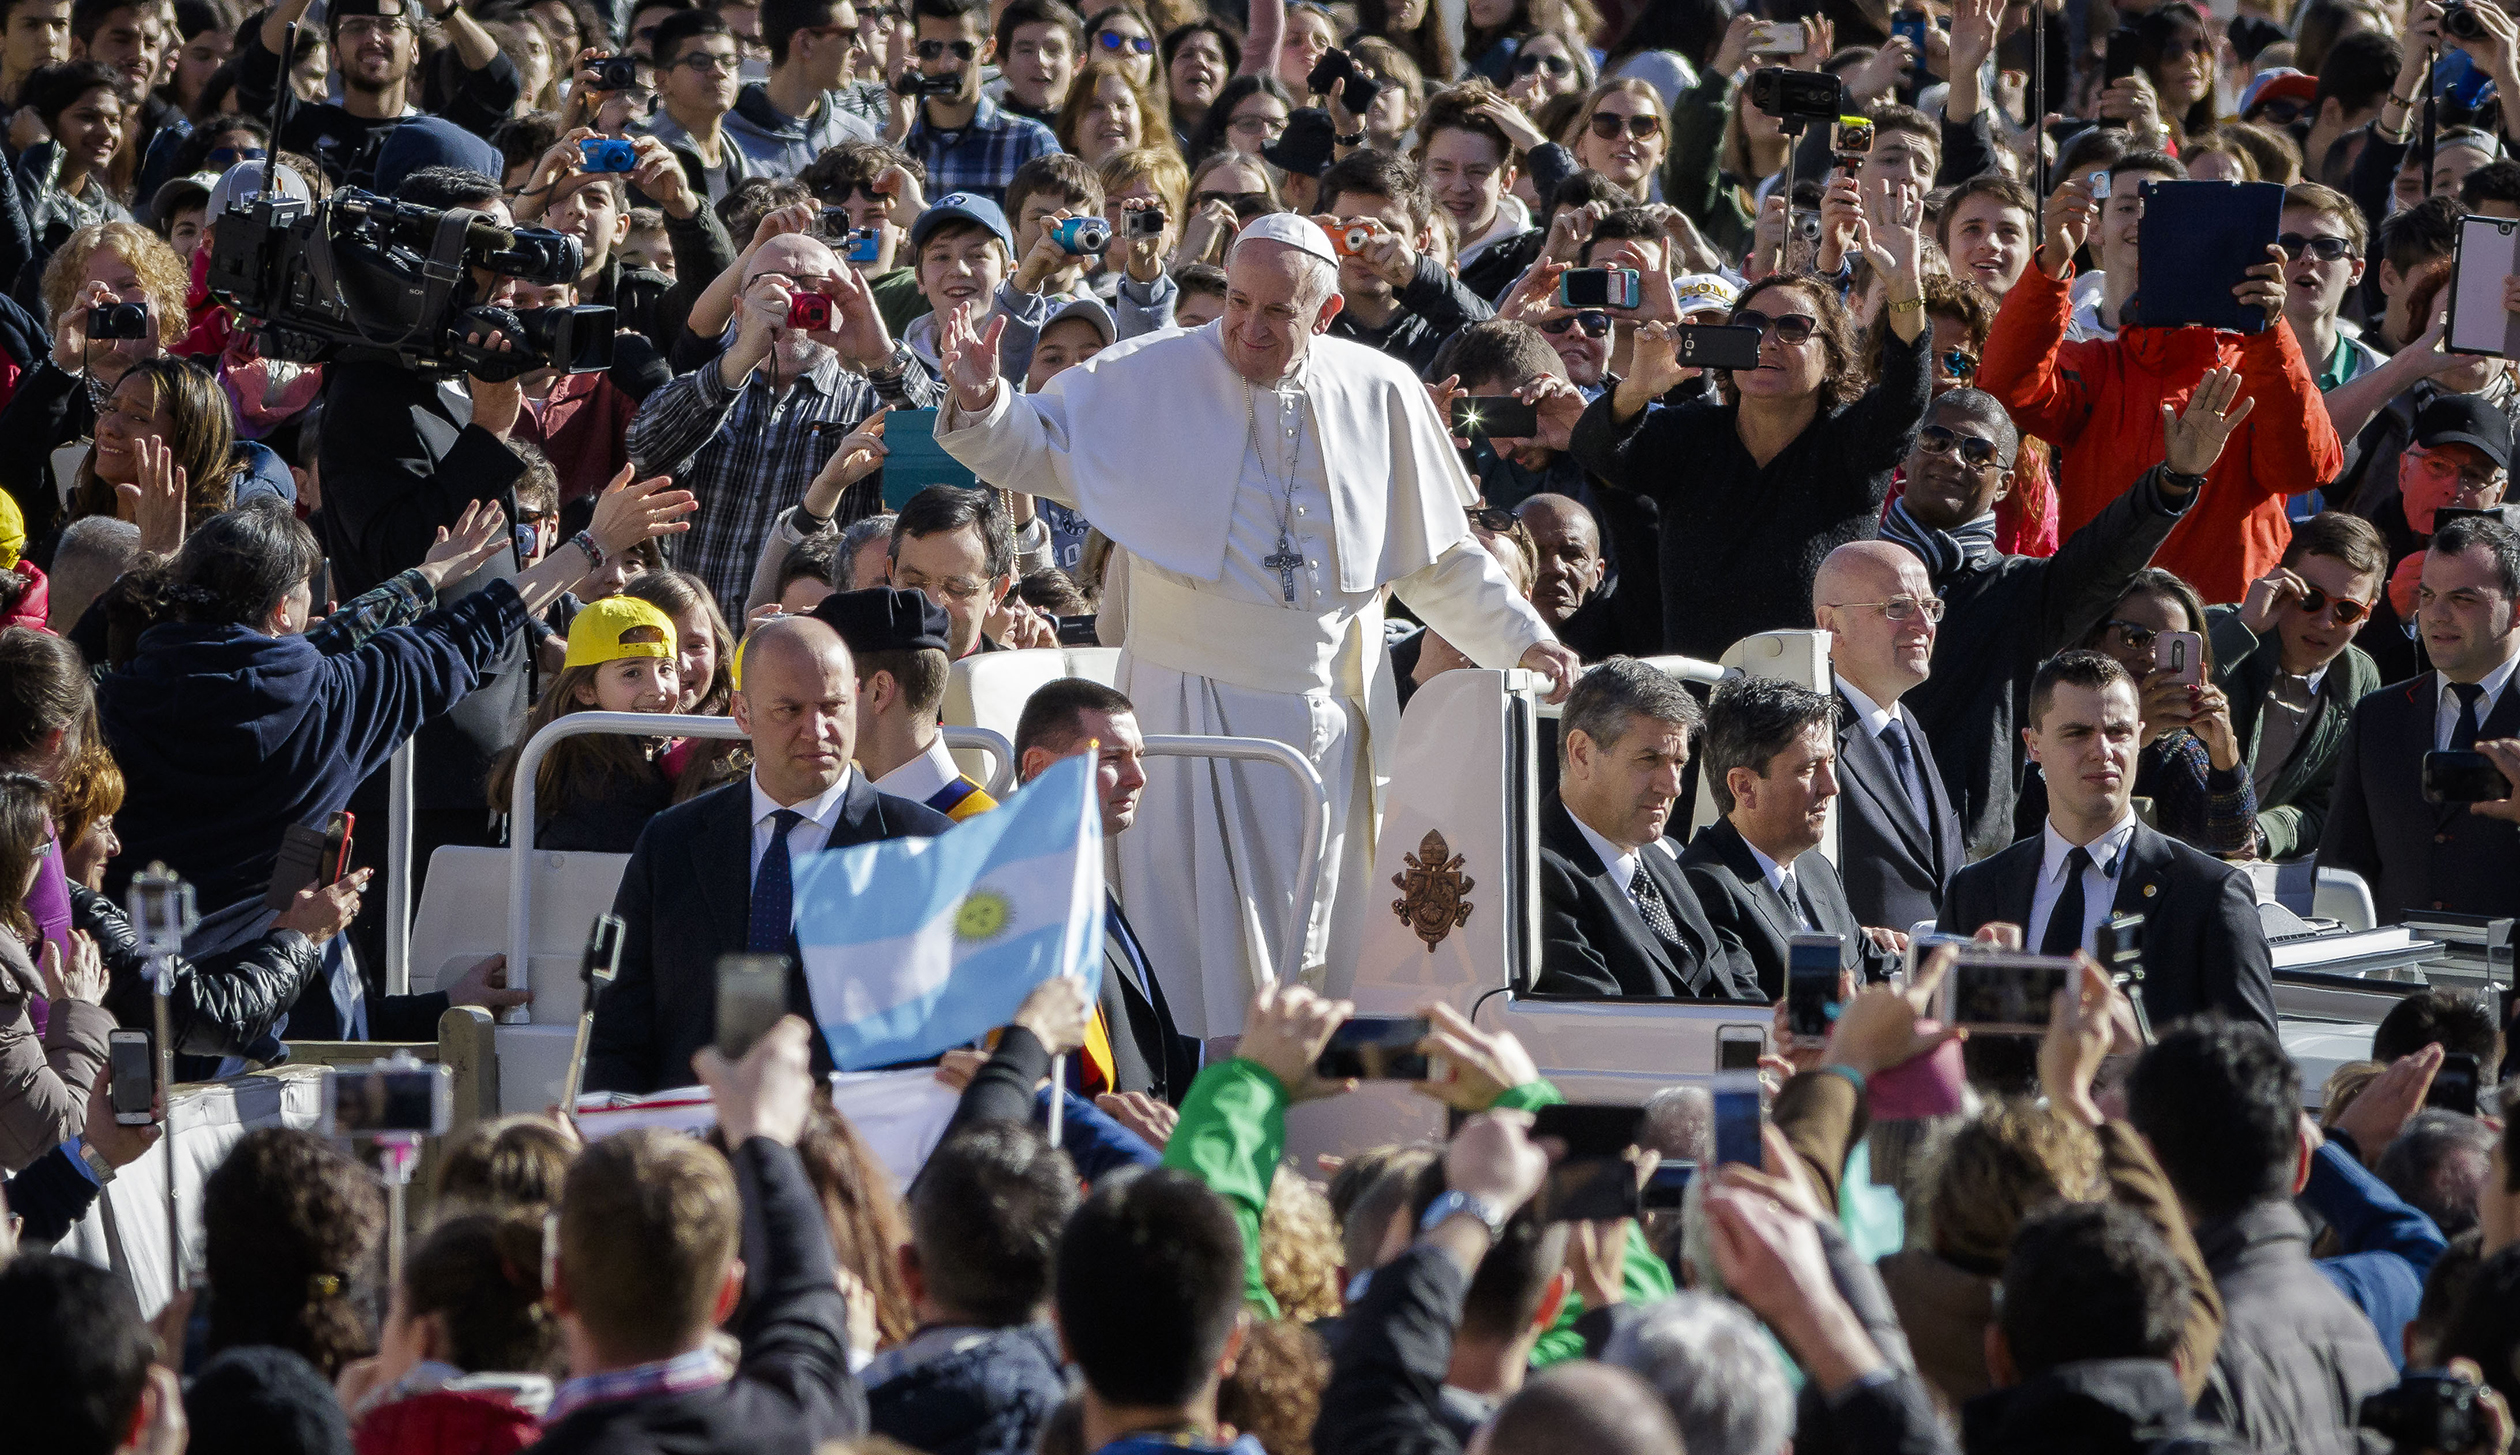 Pope Francis rides on the Popemobile through the crowd of